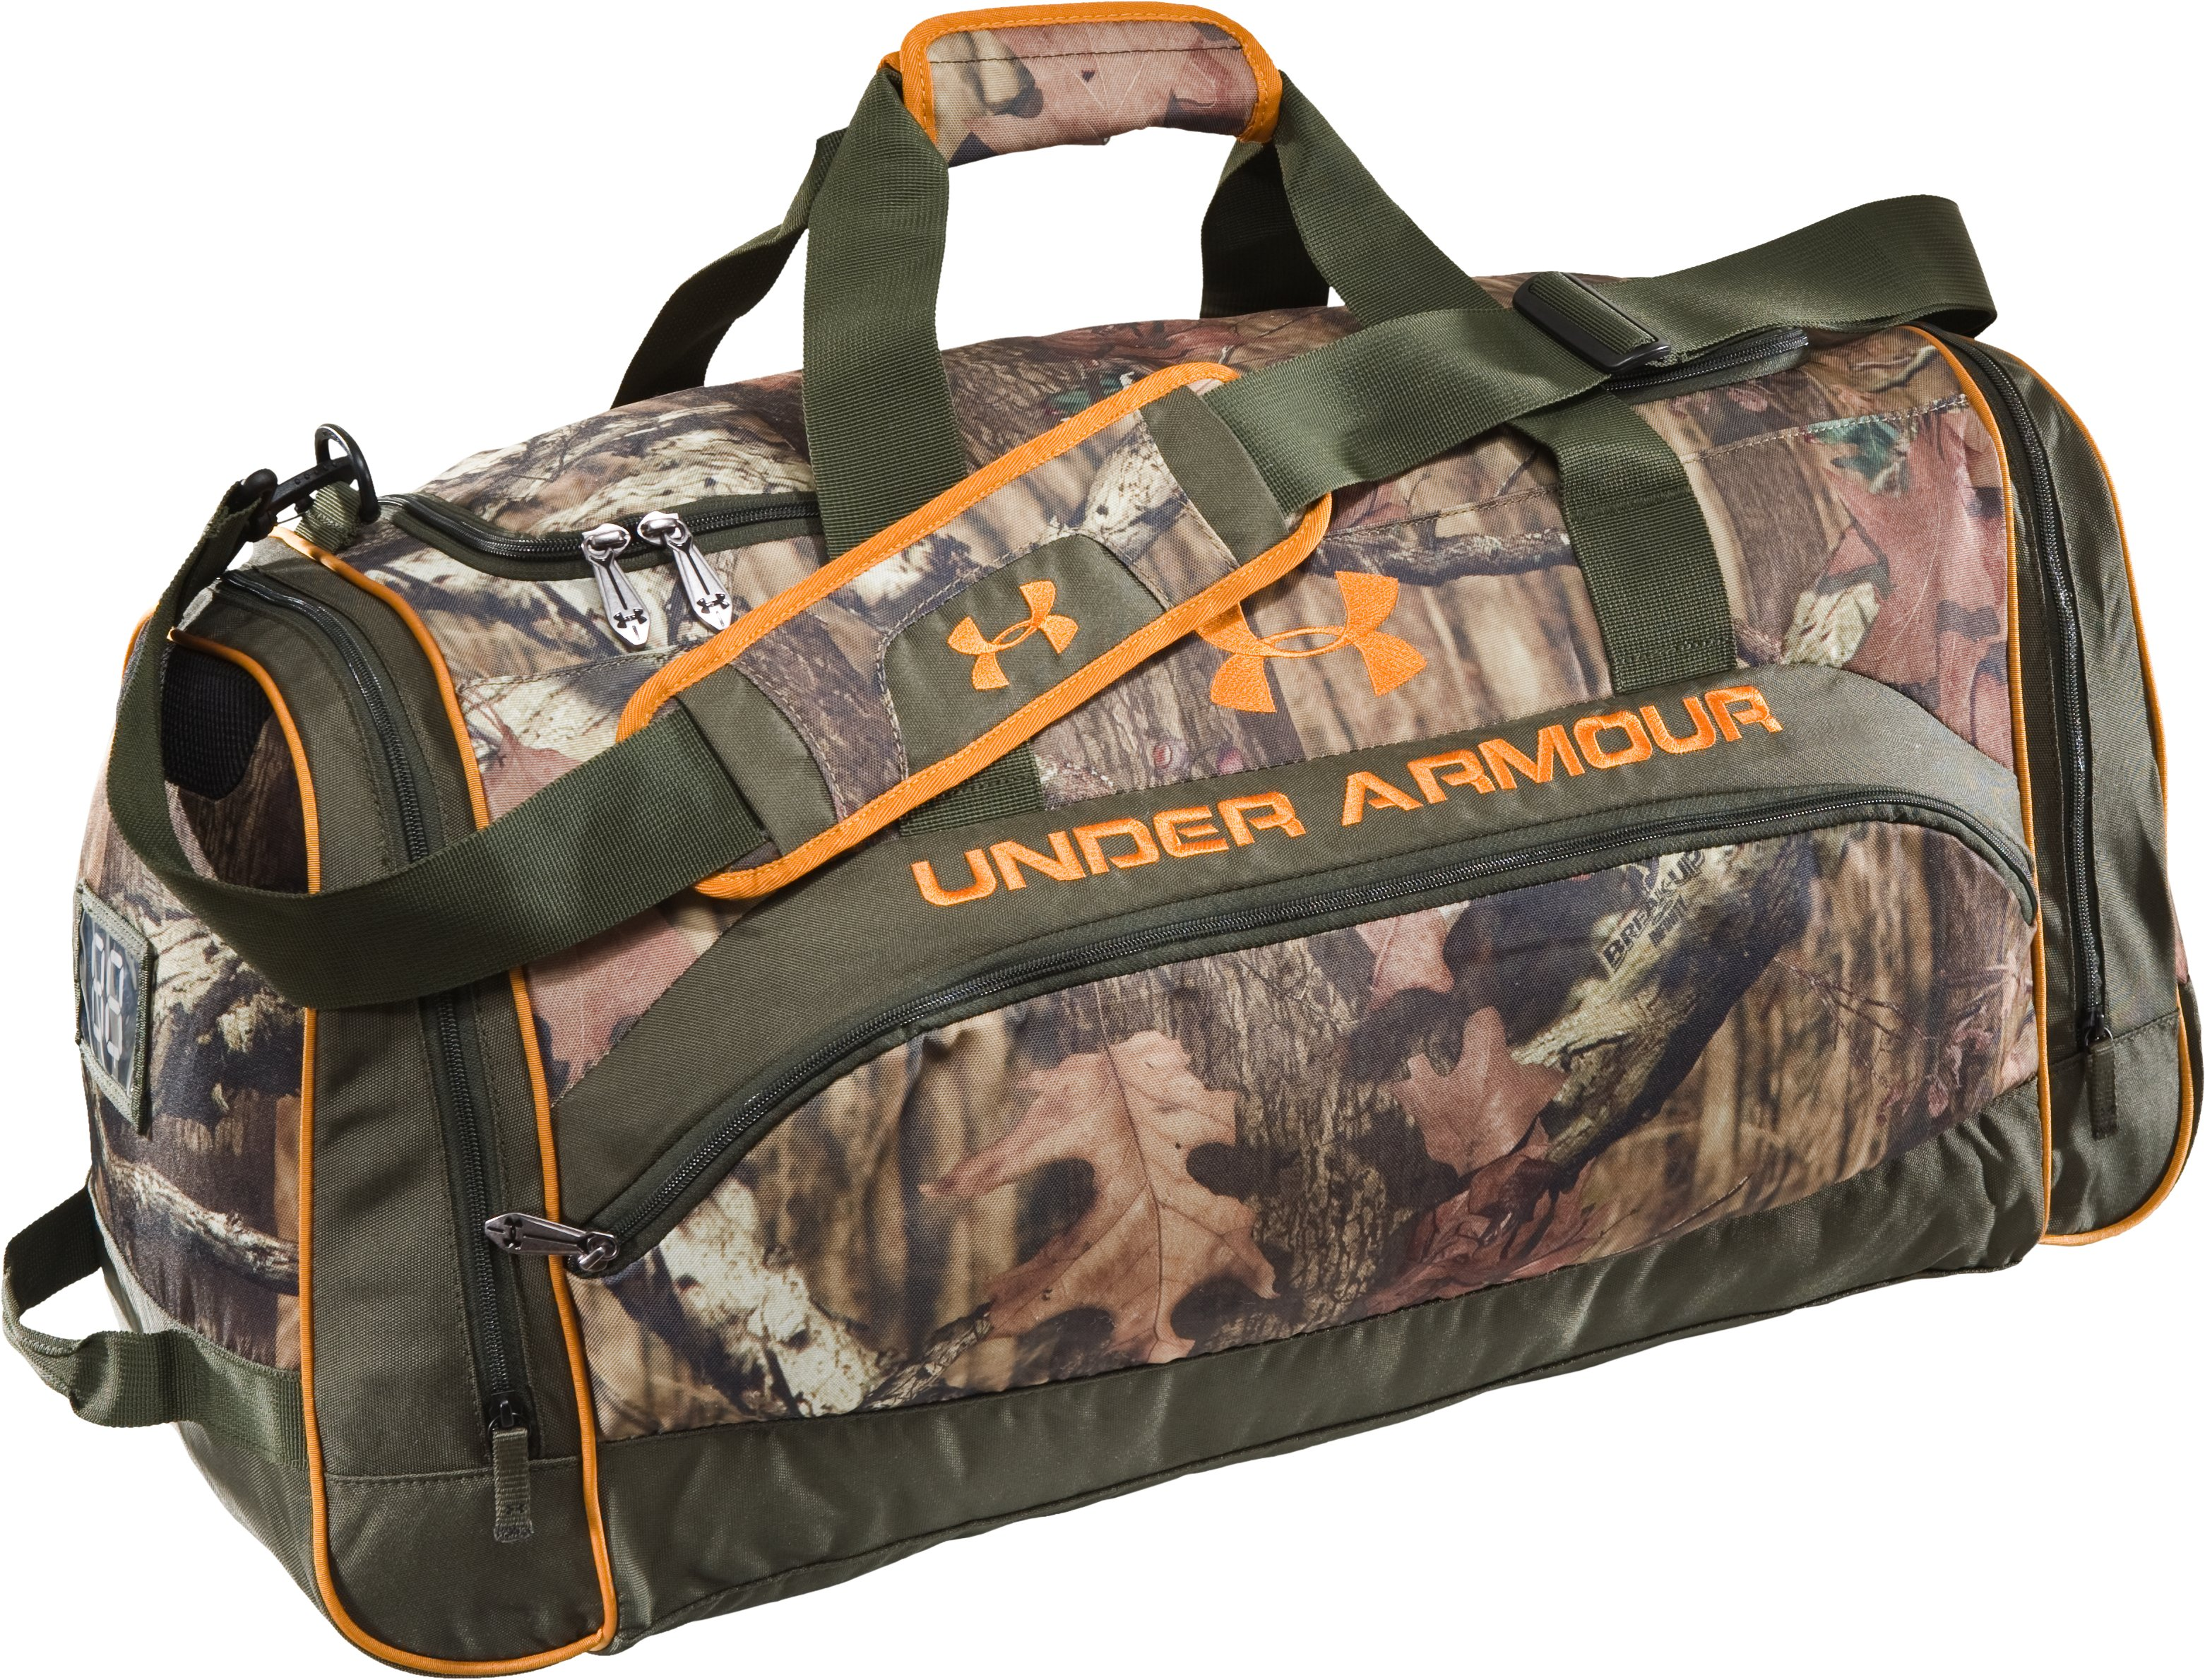 UA Duffel Bag - X Large, full size